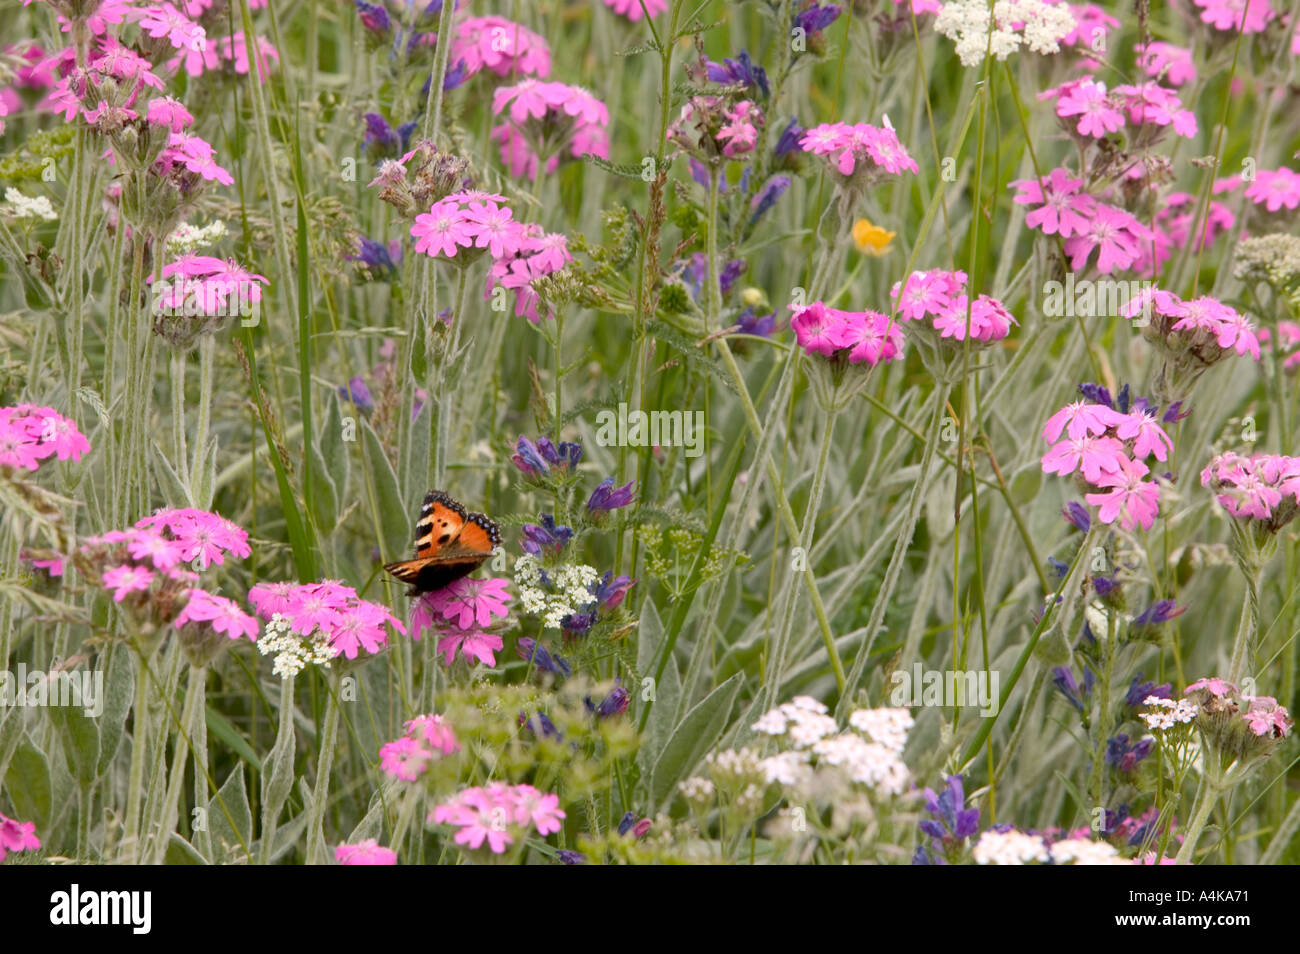 A Small Tortoiseshell butterlfy in a Swiss wildflower meadow - Stock Image